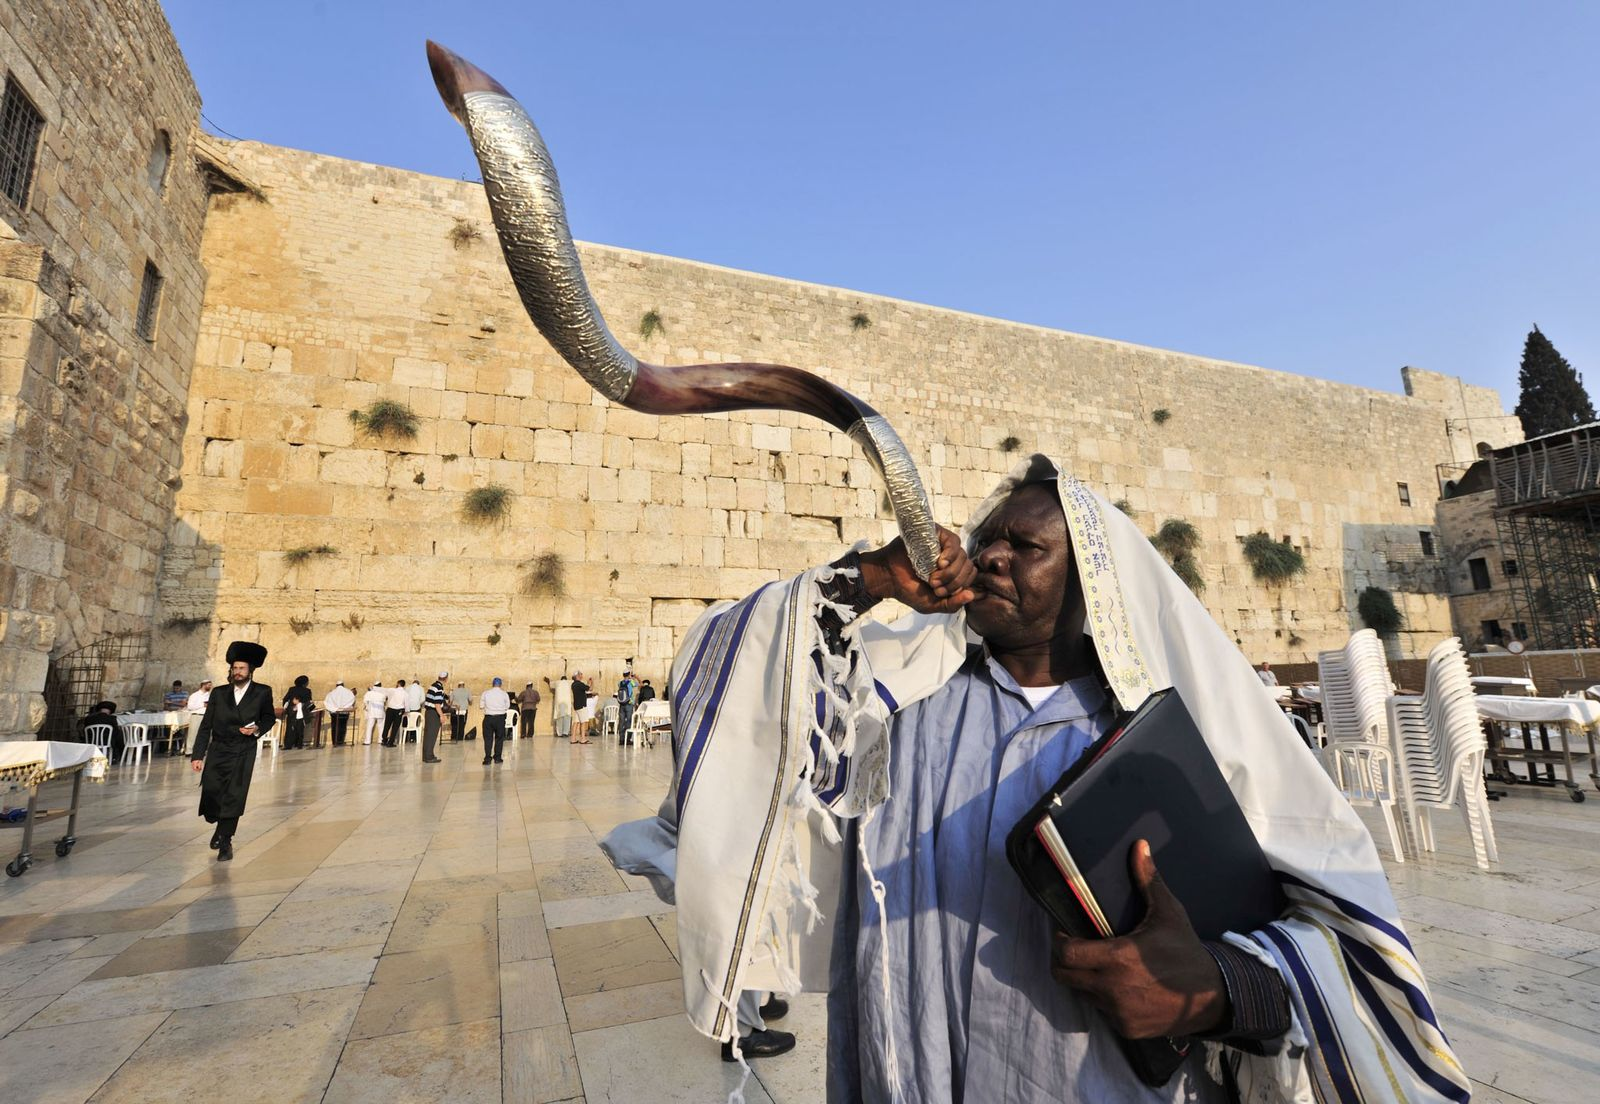 Why Rosh Hashanah kicks off the Jewish New Year in the Autumn—not January